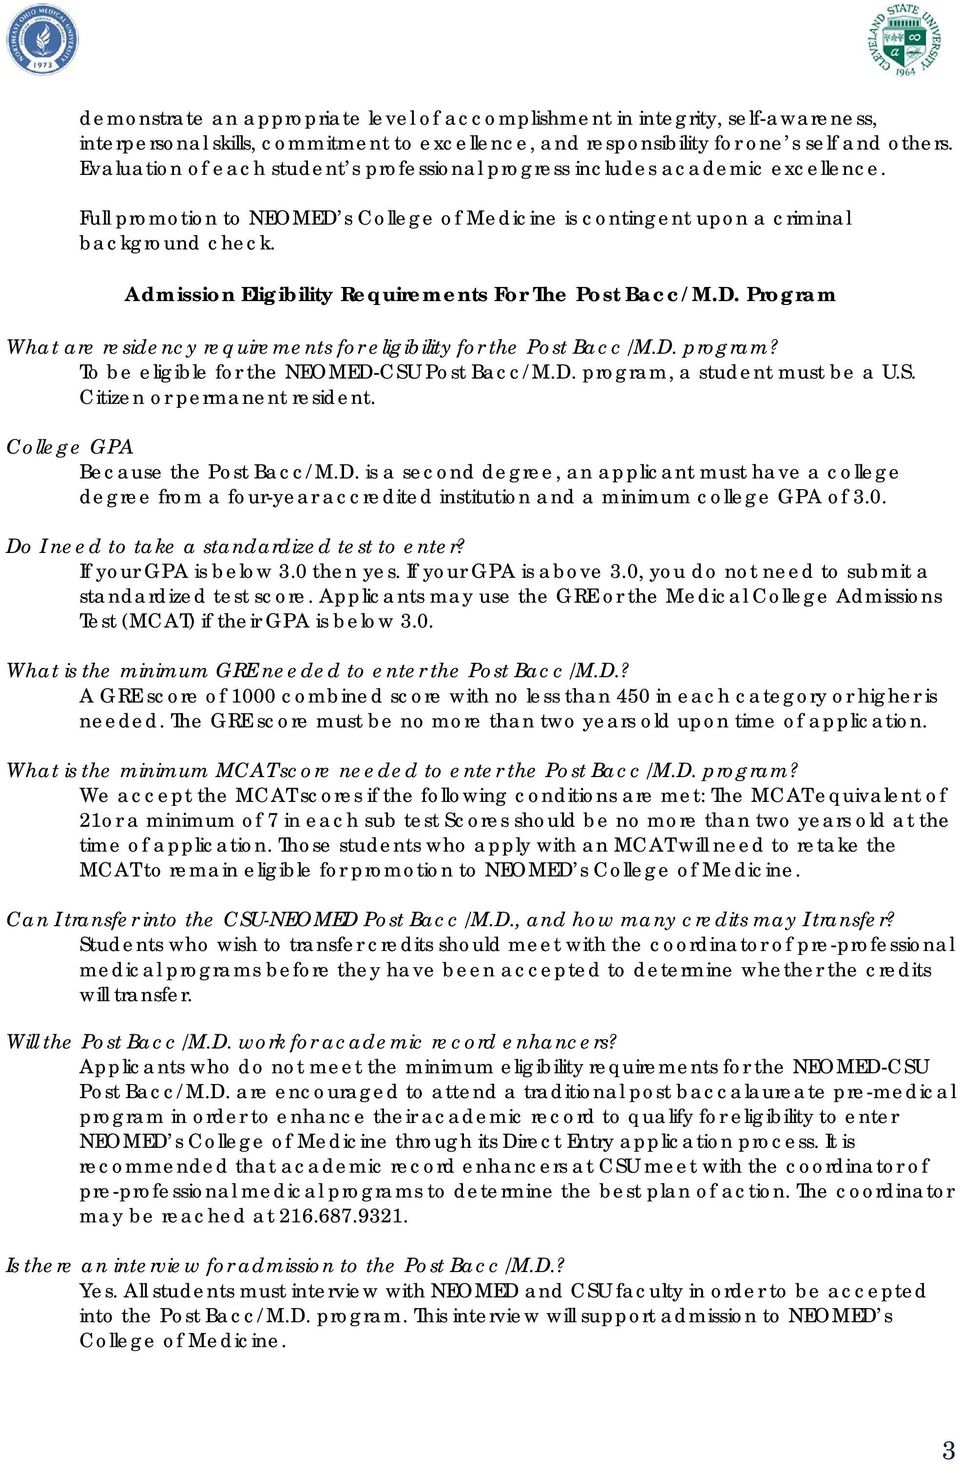 Admission Eligibility Requirements For The Post Bacc/M.D. Program What are residency requirements for eligibility for the Post Bacc/M.D. program? To be eligible for the NEOMED-CSU Post Bacc/M.D. program, a student must be a U.